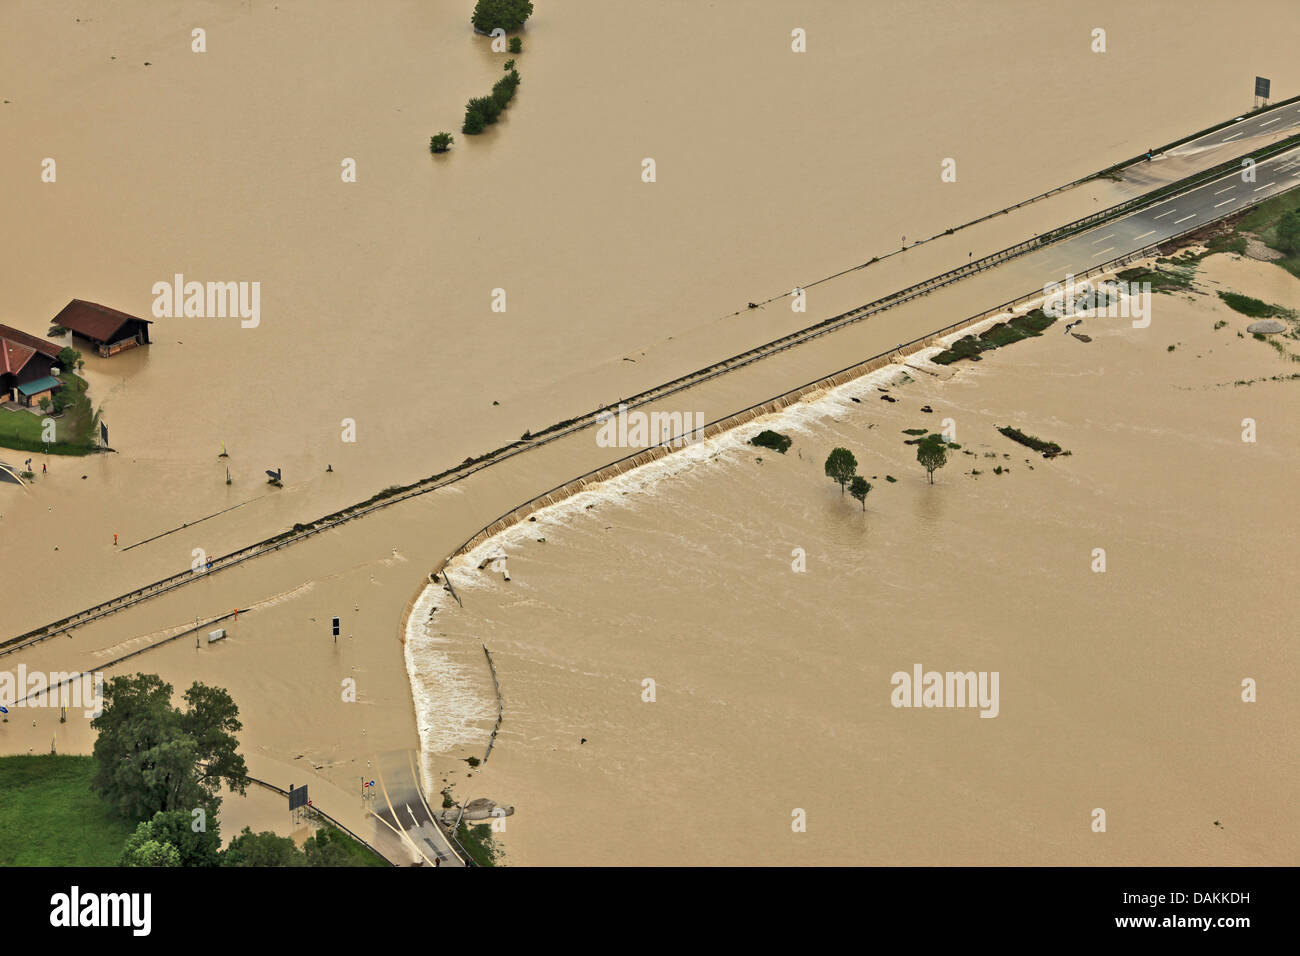 highway A8 at lake Chiemsee flooded bei river Tiroler Achen in June 2013, Germany, Bavaria - Stock Image